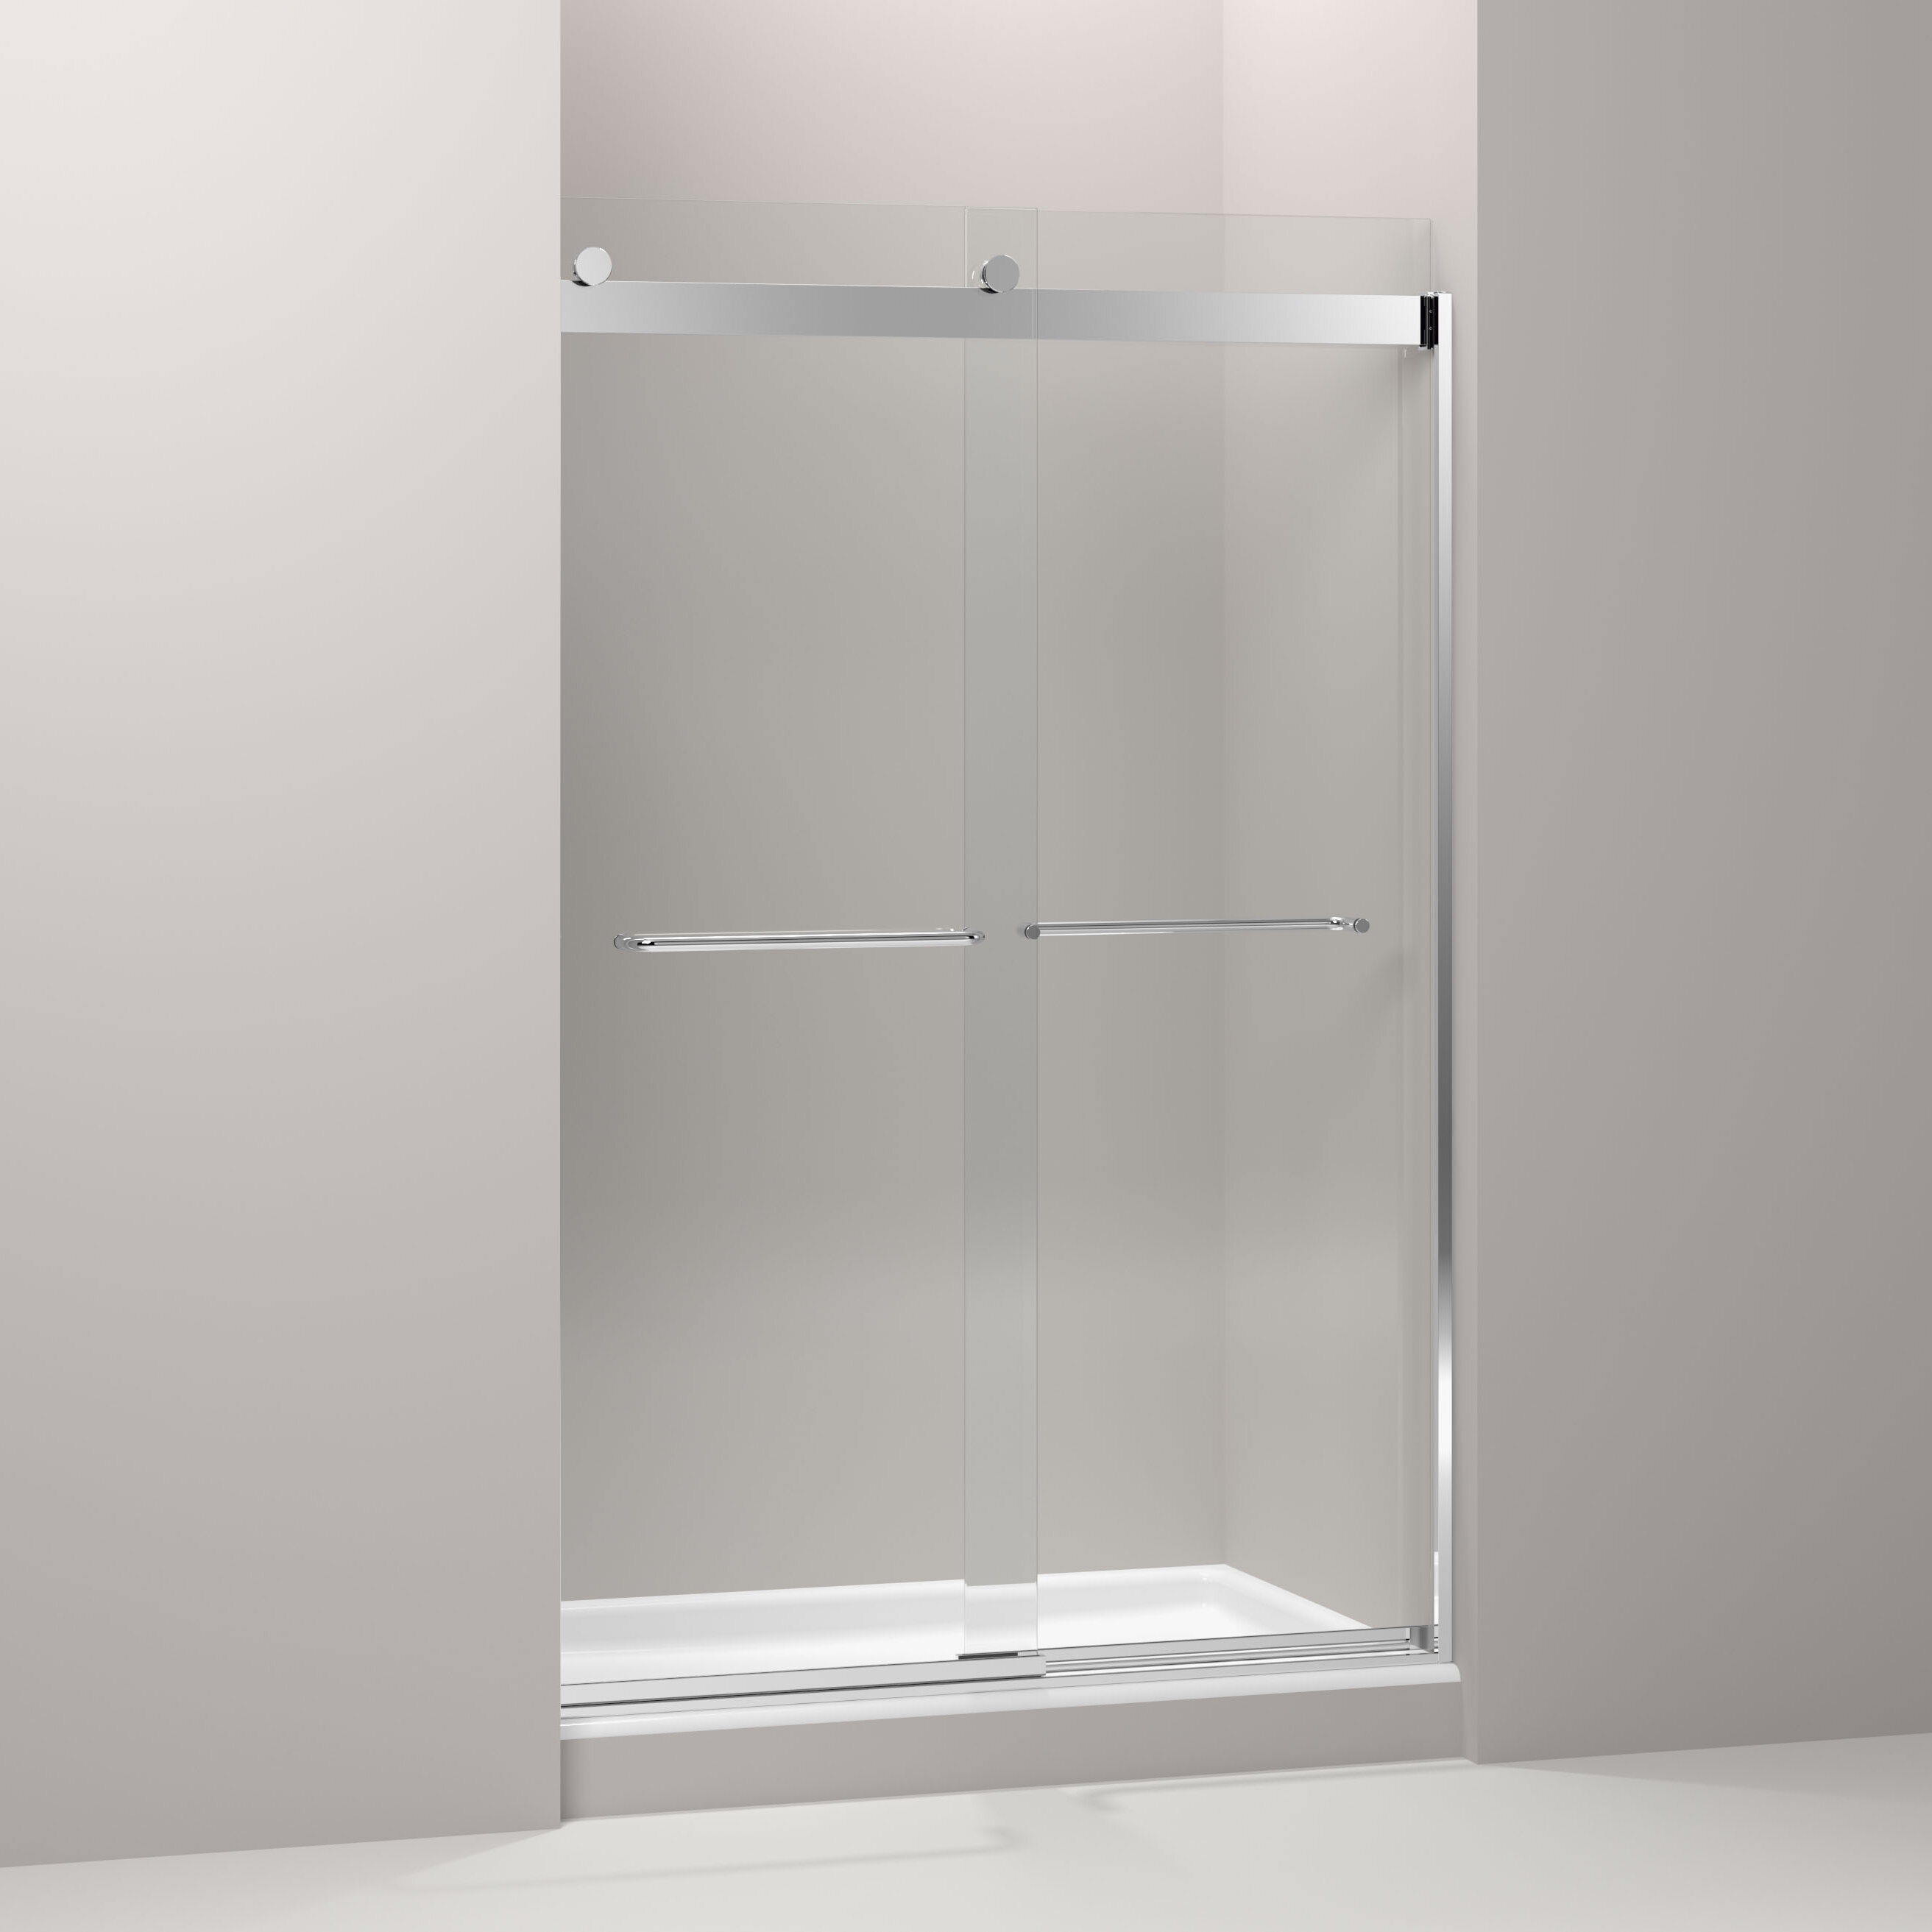 Kohler Levity 47 63 X 74 Bypass Shower Door With Cleancoat